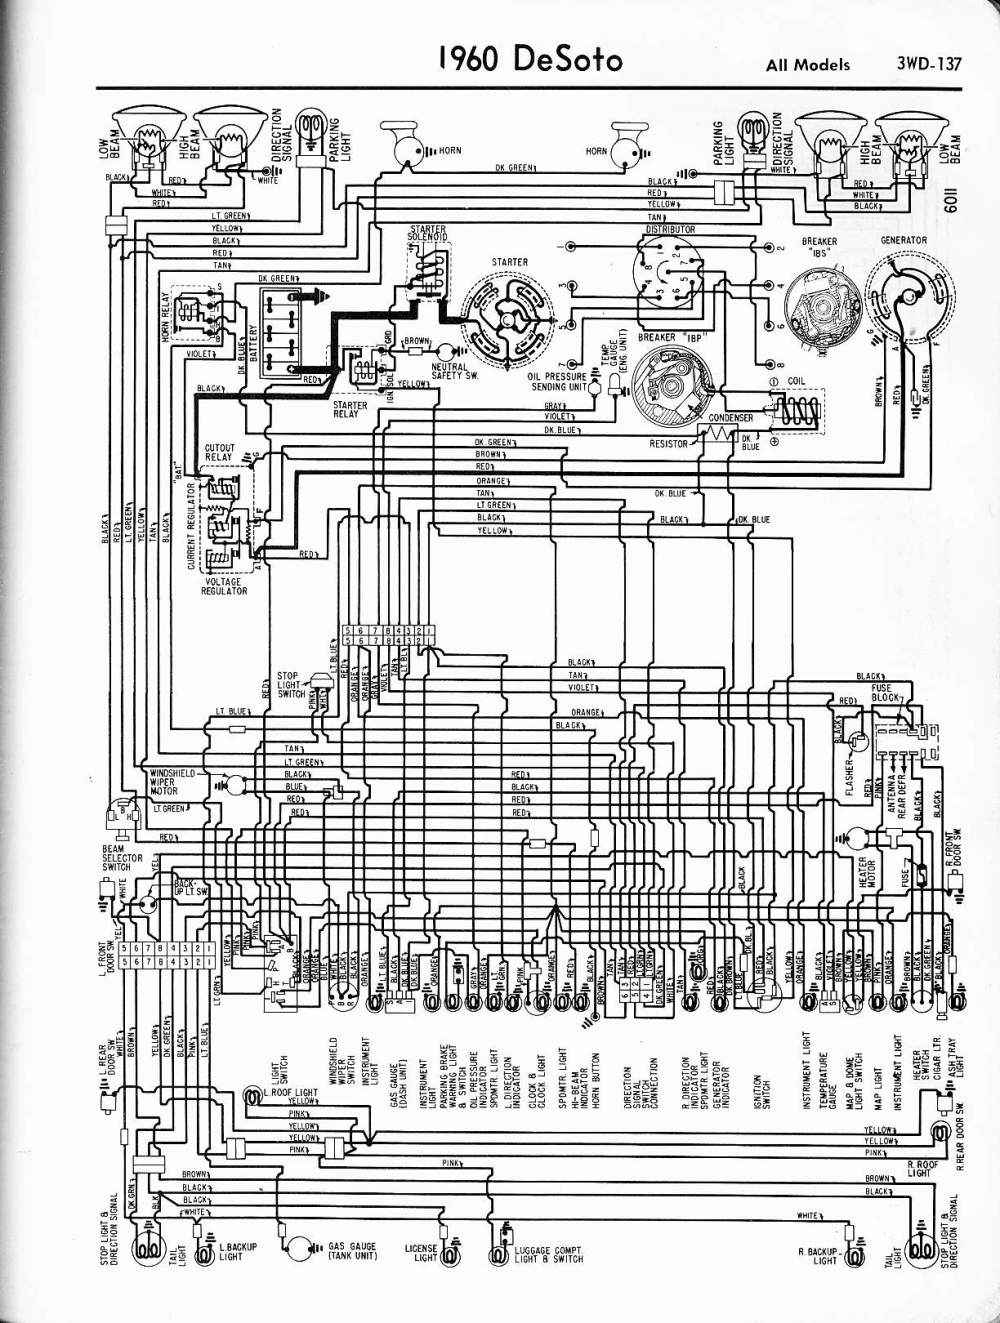 medium resolution of 1960 desoto wiring diagram data diagram schematic1960 desoto wiring diagram wiring diagram paper 1960 desoto wiring